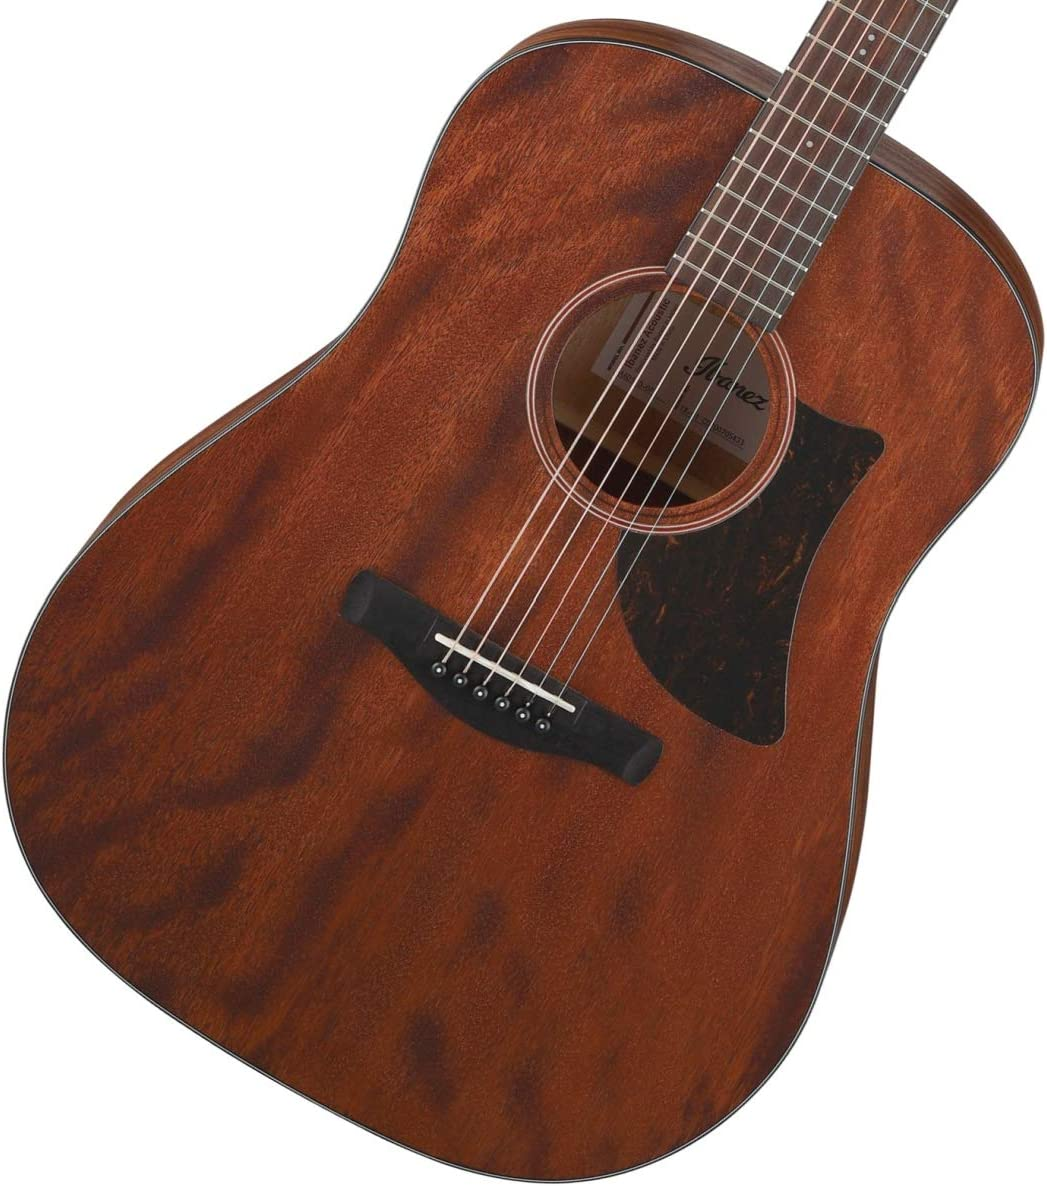 Ibanez AAD140 Price Large special price !! reduction Advanced Acoustic Solid Top Ope Guitar Dreadnought